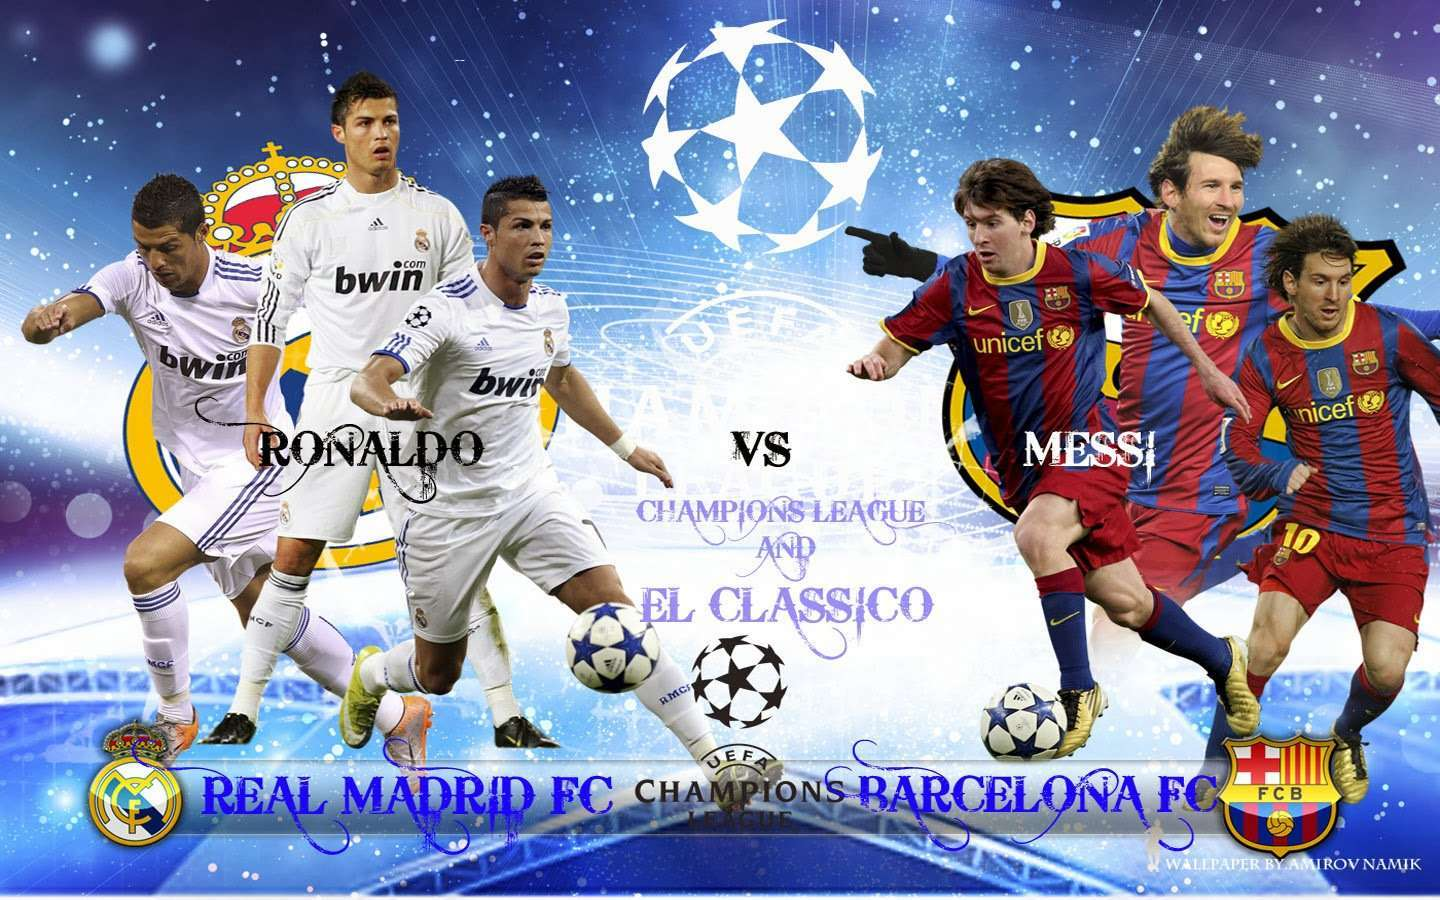 Cristiano Ronaldo vs Lionel Messi HD Wallpaper 1440x900